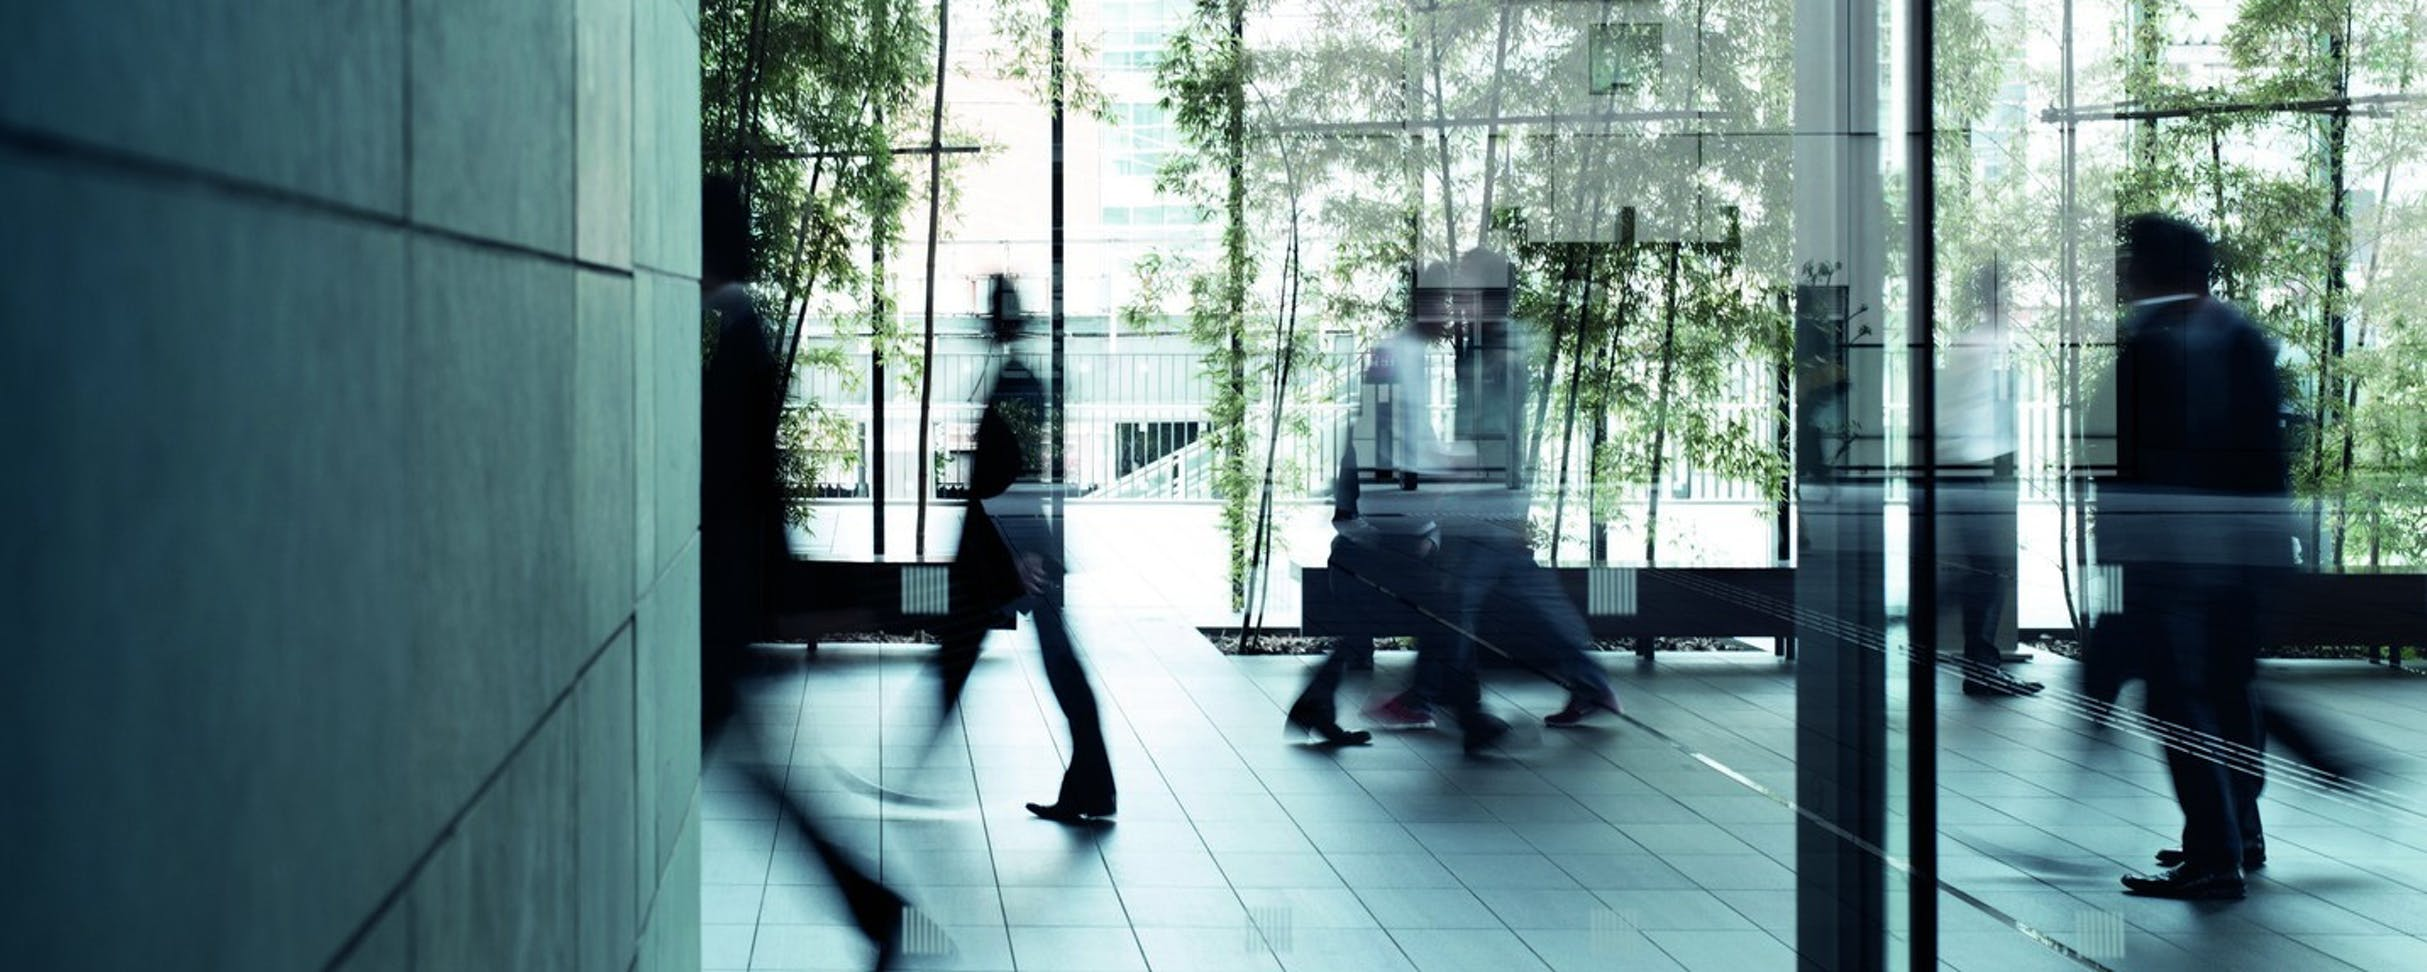 Image of office hallway with people walking.